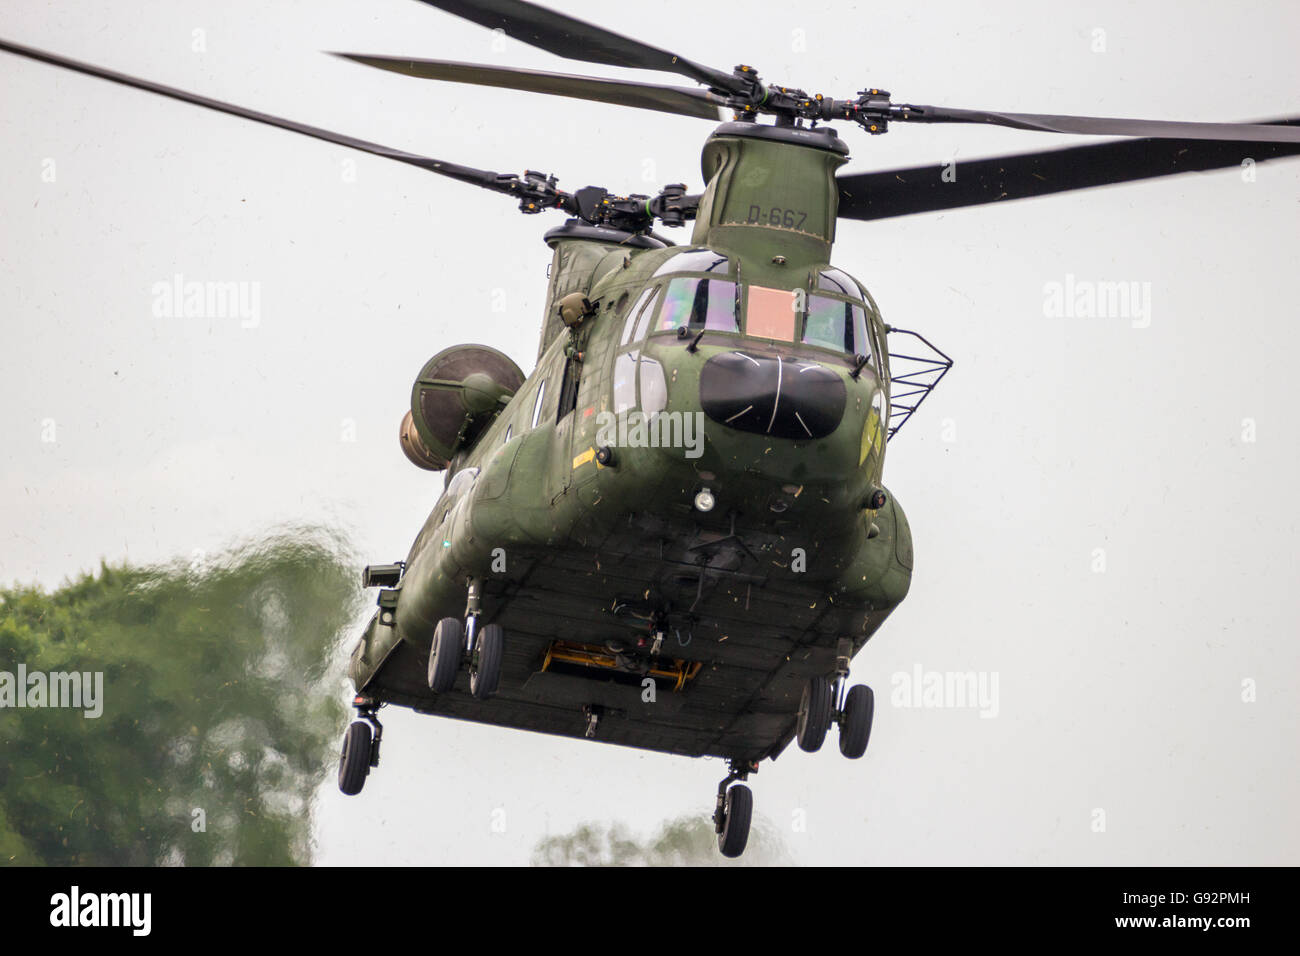 Boeing CH-47 Chinook transport helicopter - Stock Image